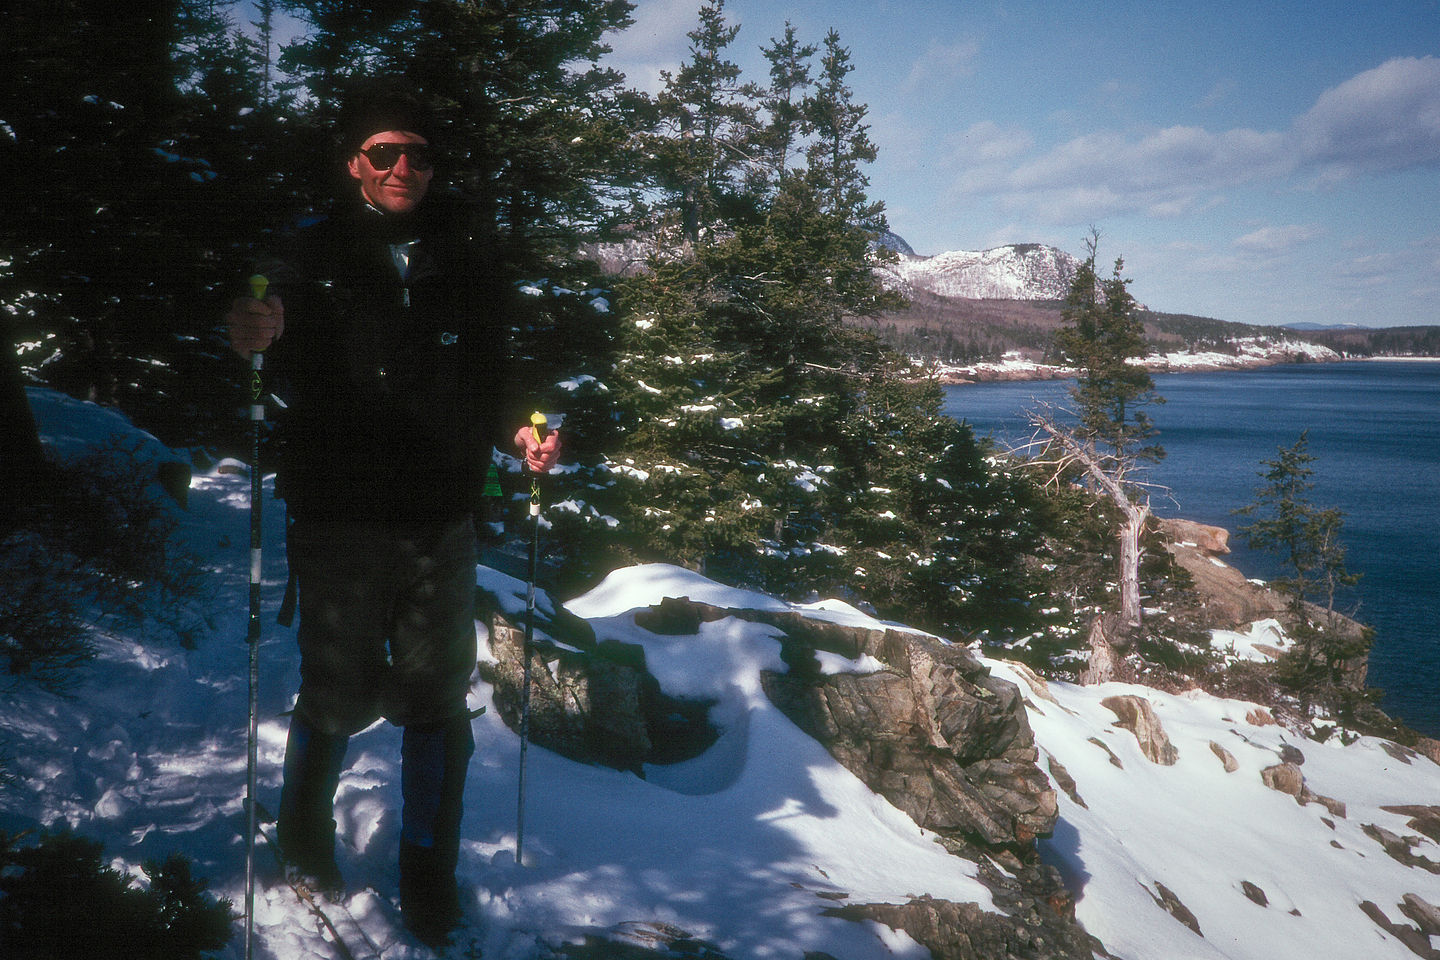 Herb Cross-Country Skiing on trail over ocean